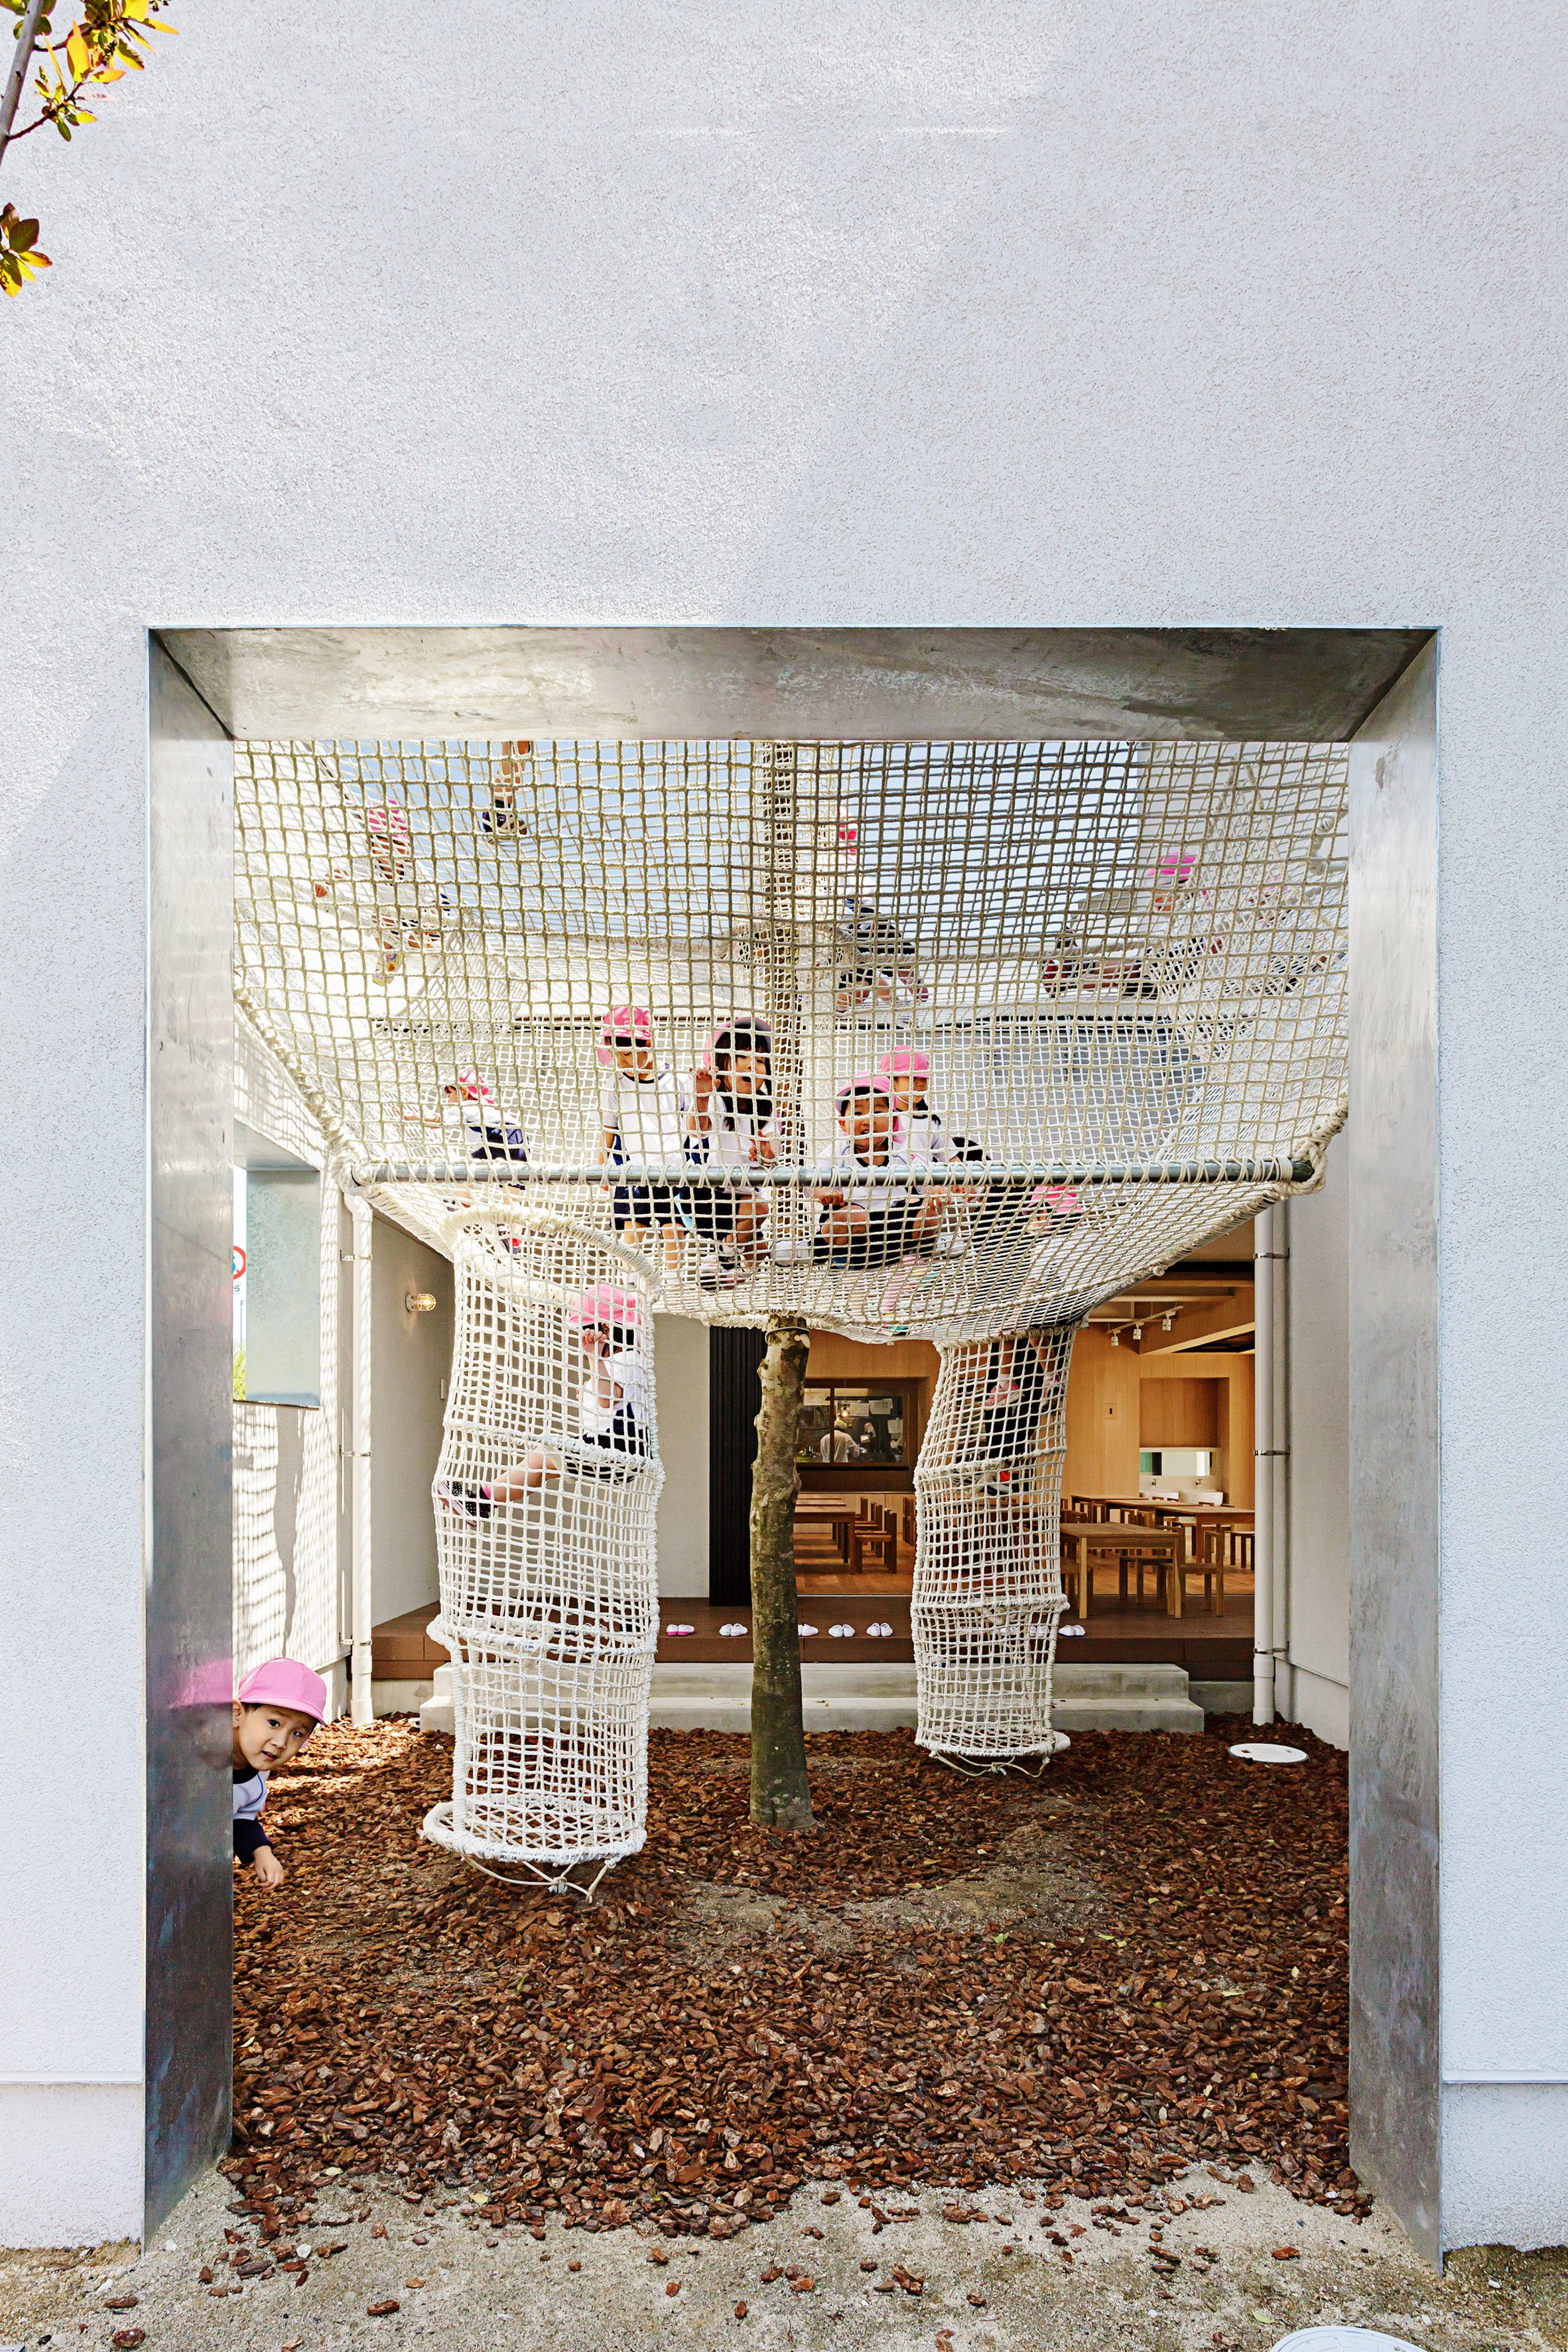 Climbing nets surround tree extending through balcony of for Balcony surrounds